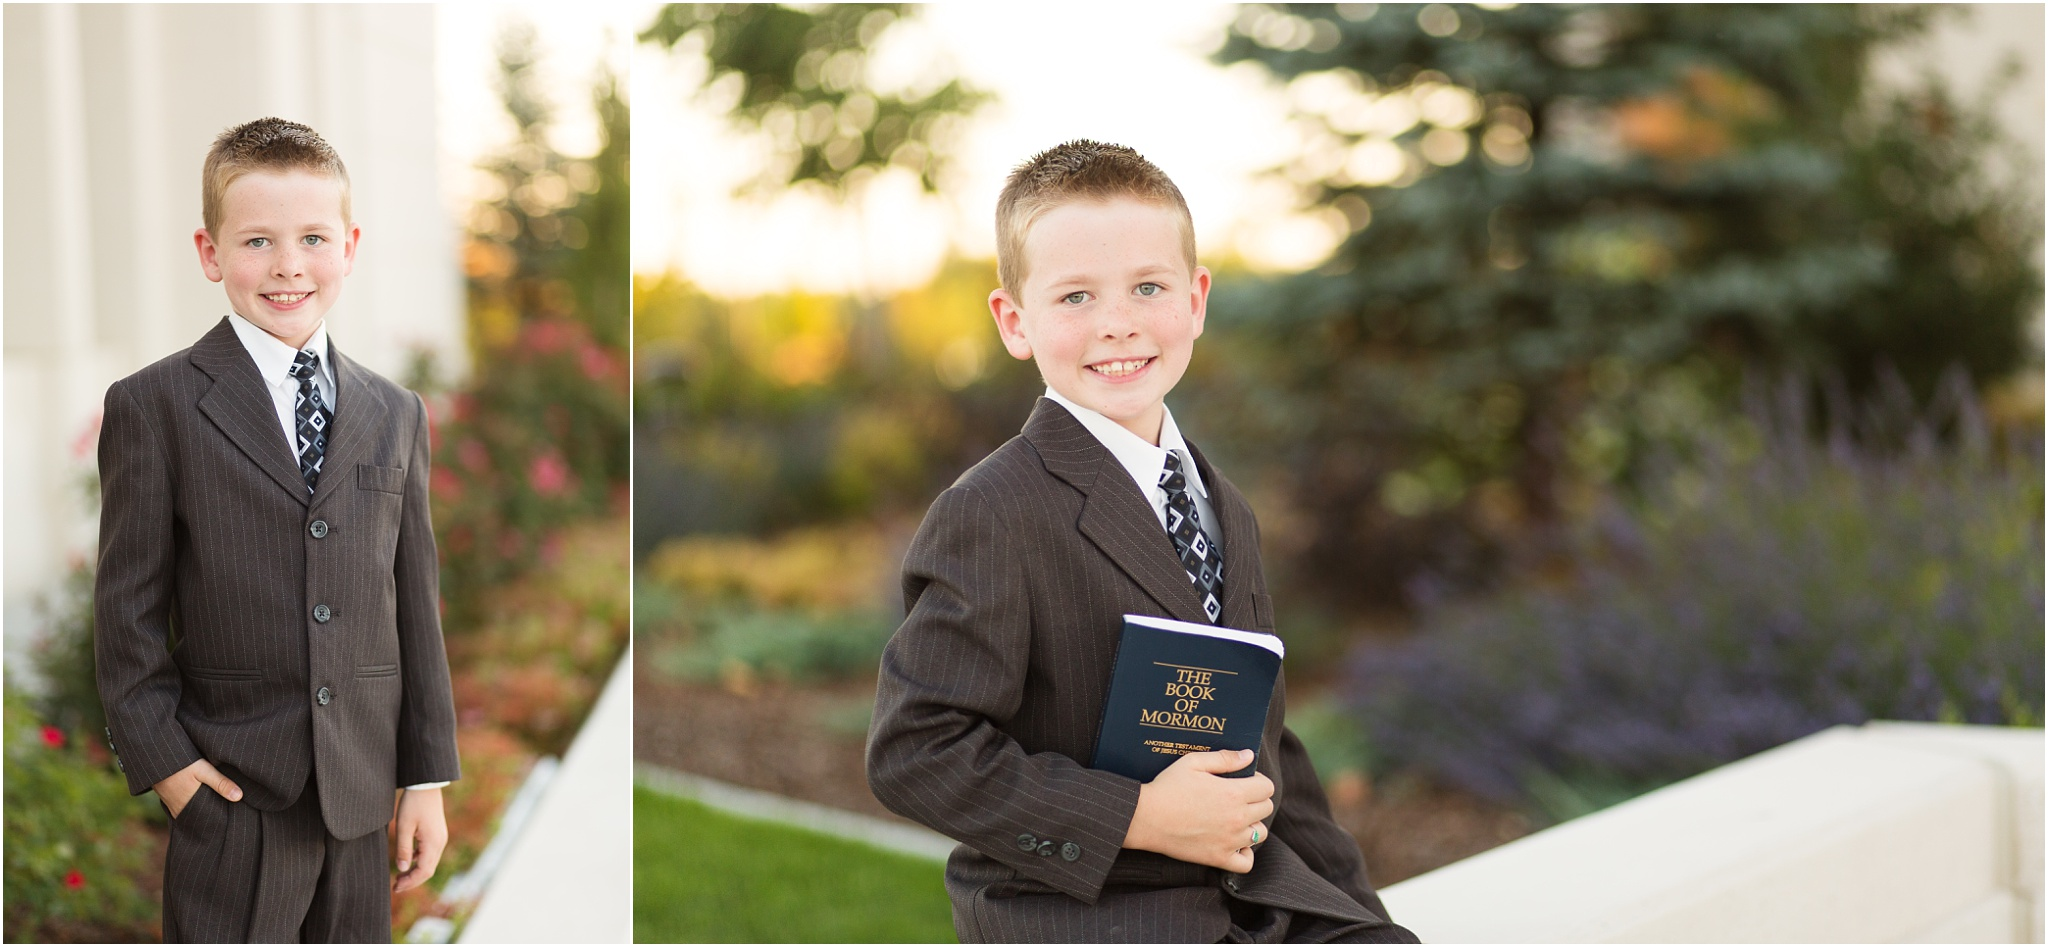 LDS Baptism Photography_Meridian Idaho Temple_Boise Idaho_Leah Southwick Photography_0101.jpg